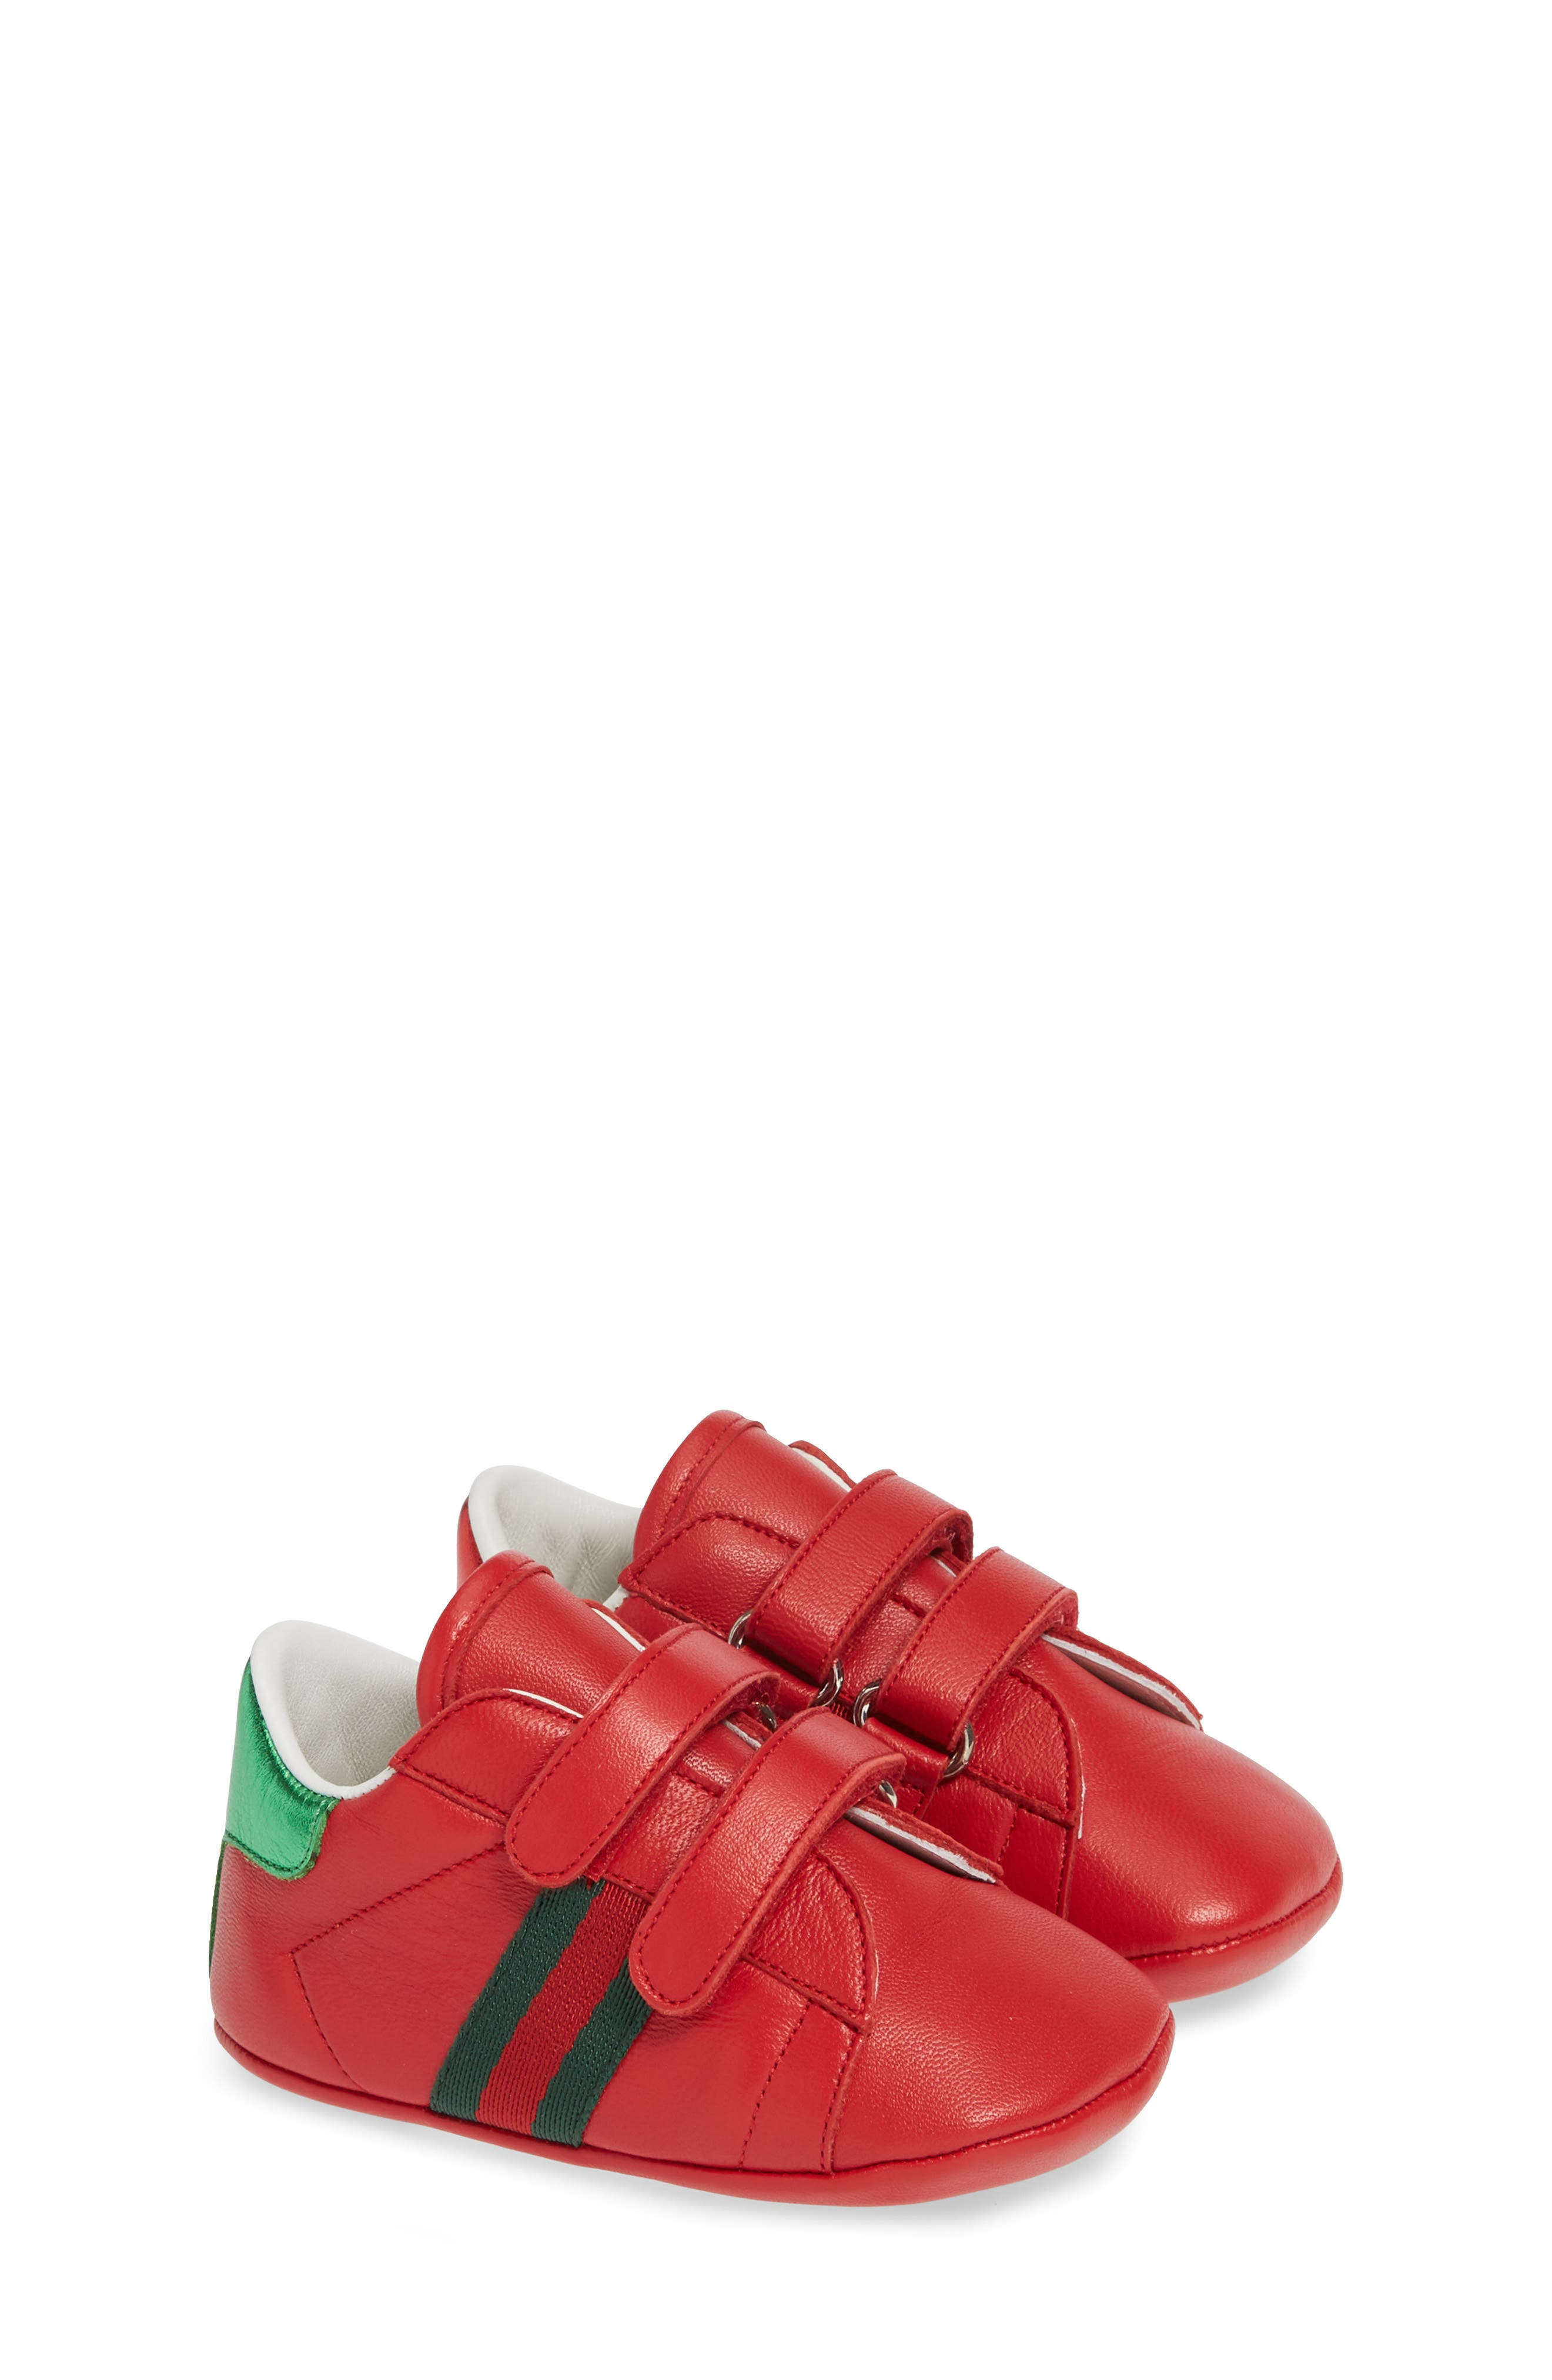 Ace Crib Shoe,                             Alternate thumbnail 2, color,                             RED